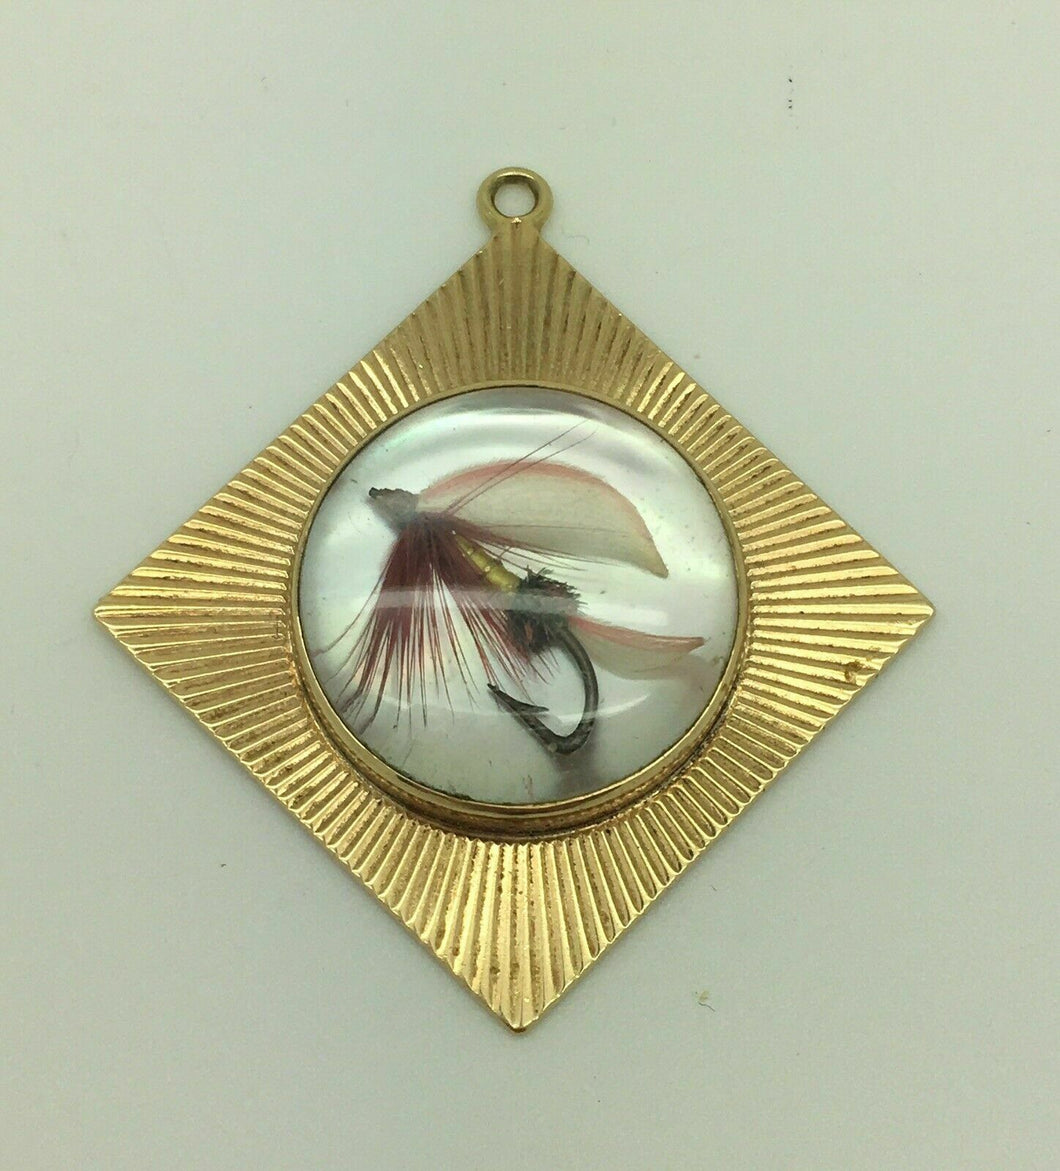 TIFFANY & CO 14K YELLOW GOLD FLY FISHING LURE CHARM / PENDANT - LOT 4100R